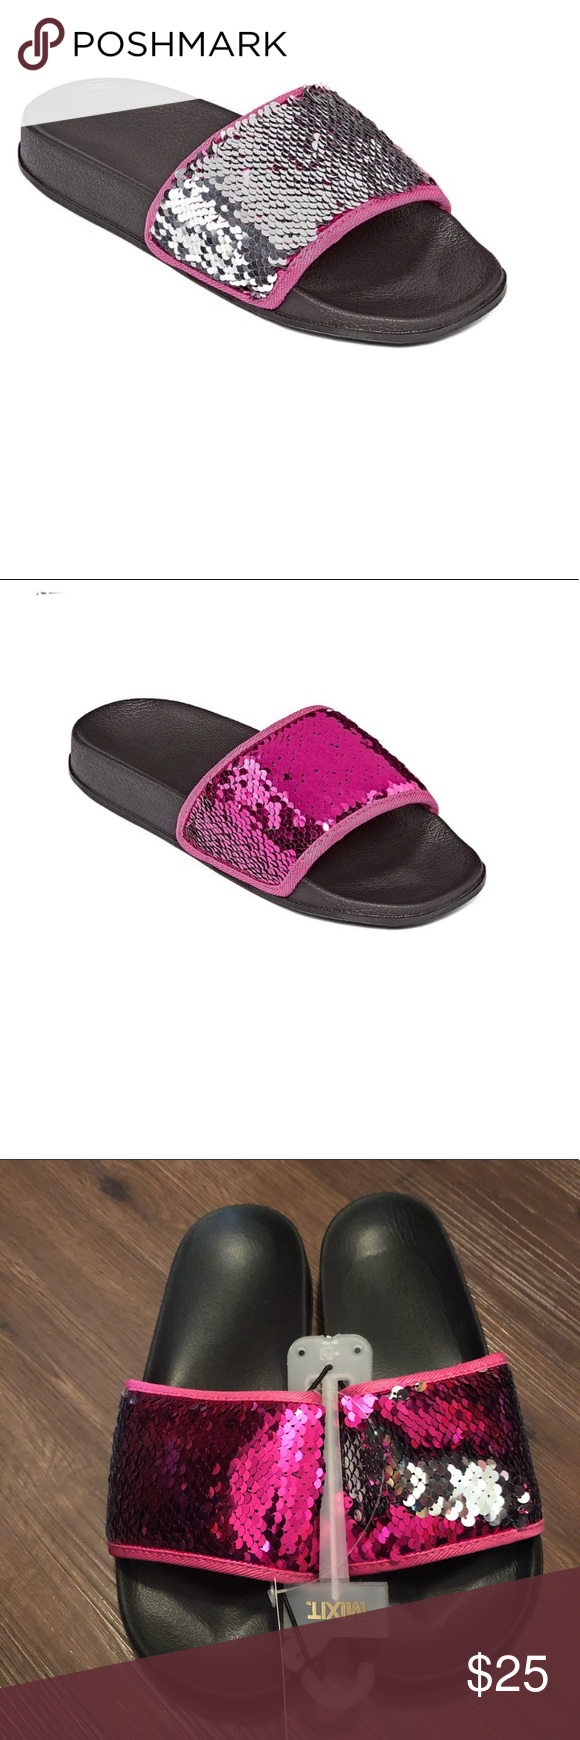 5aabf37fa Mixit Pink Silver Mermaid Slide Sandals-9 NWT Mixit mermaid two-tone bling  slides. These slides can either be pink or you can turn them silver bling.